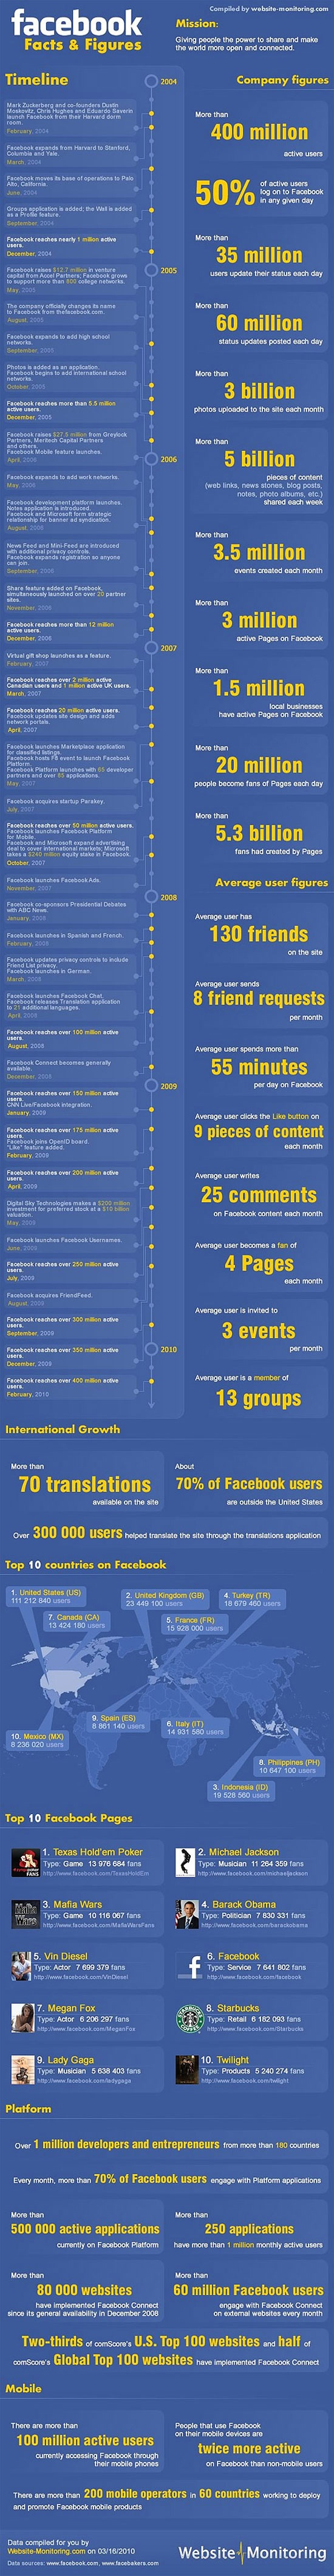 A timeline of Facebook's growth and expansion.